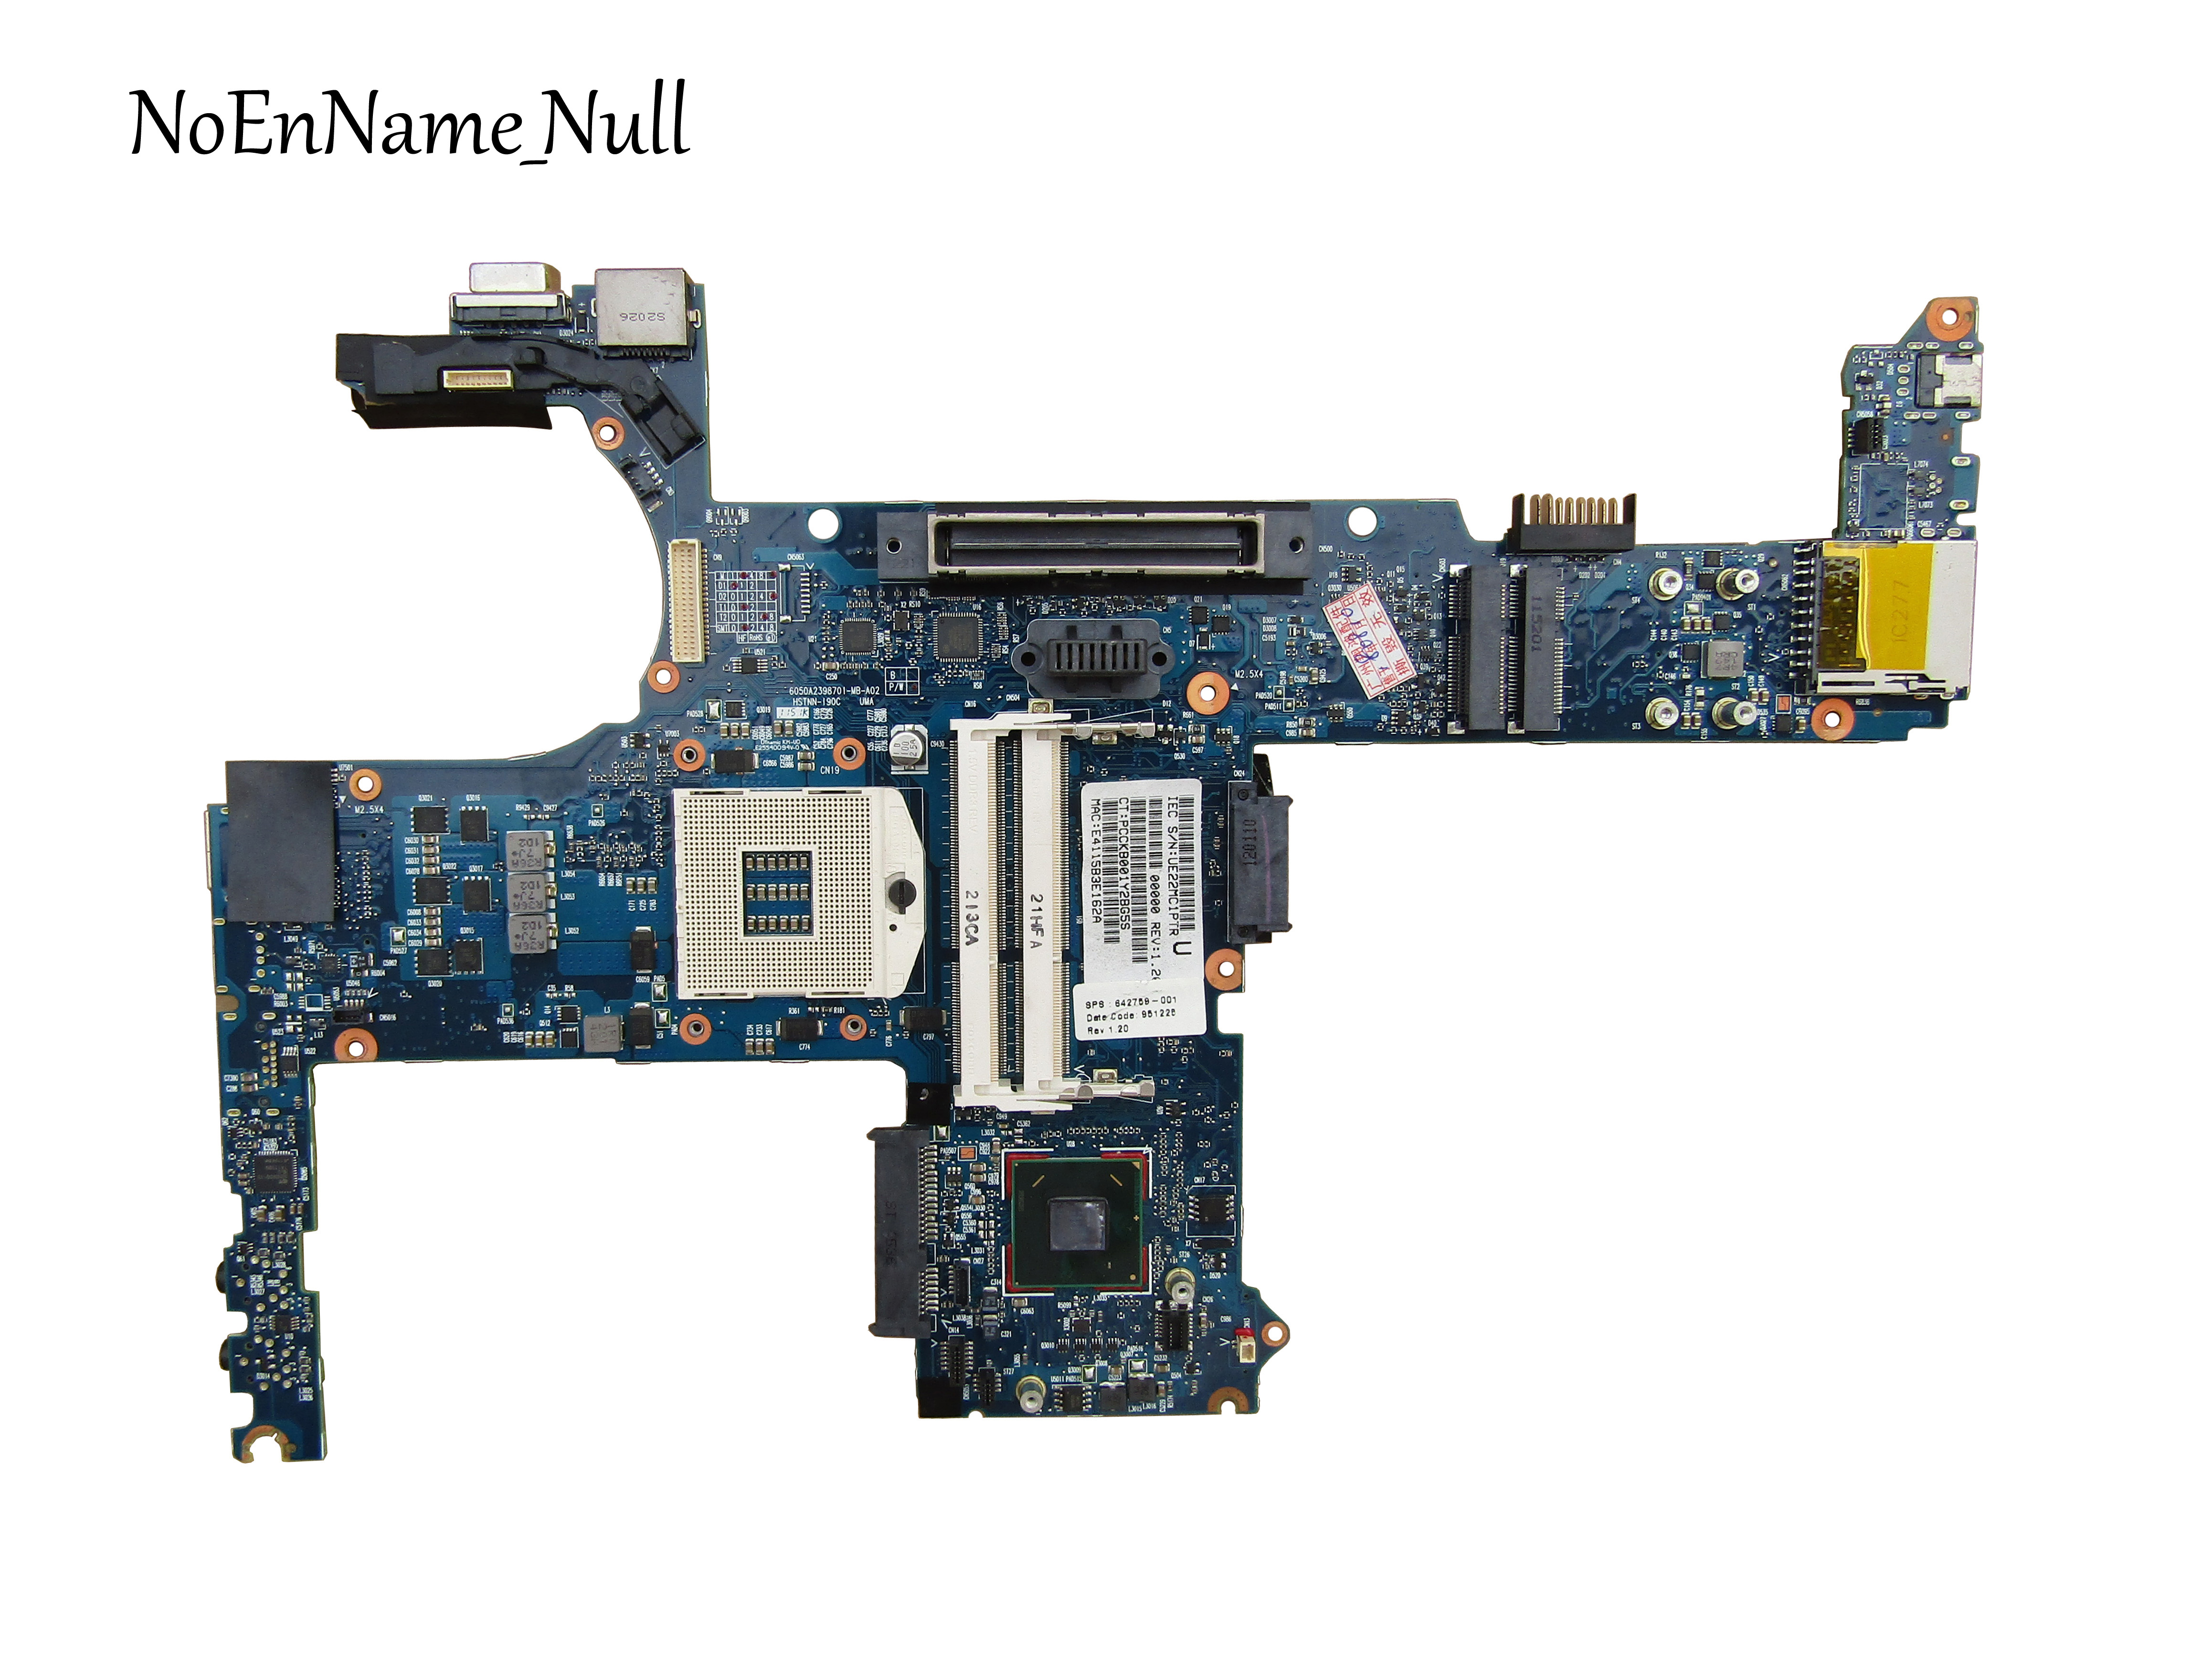 642759-001 for HP EliteBook 8460p Notebook for HP 8460P laptop motherboard  for Intel QM67 chipset 100% full tested ok